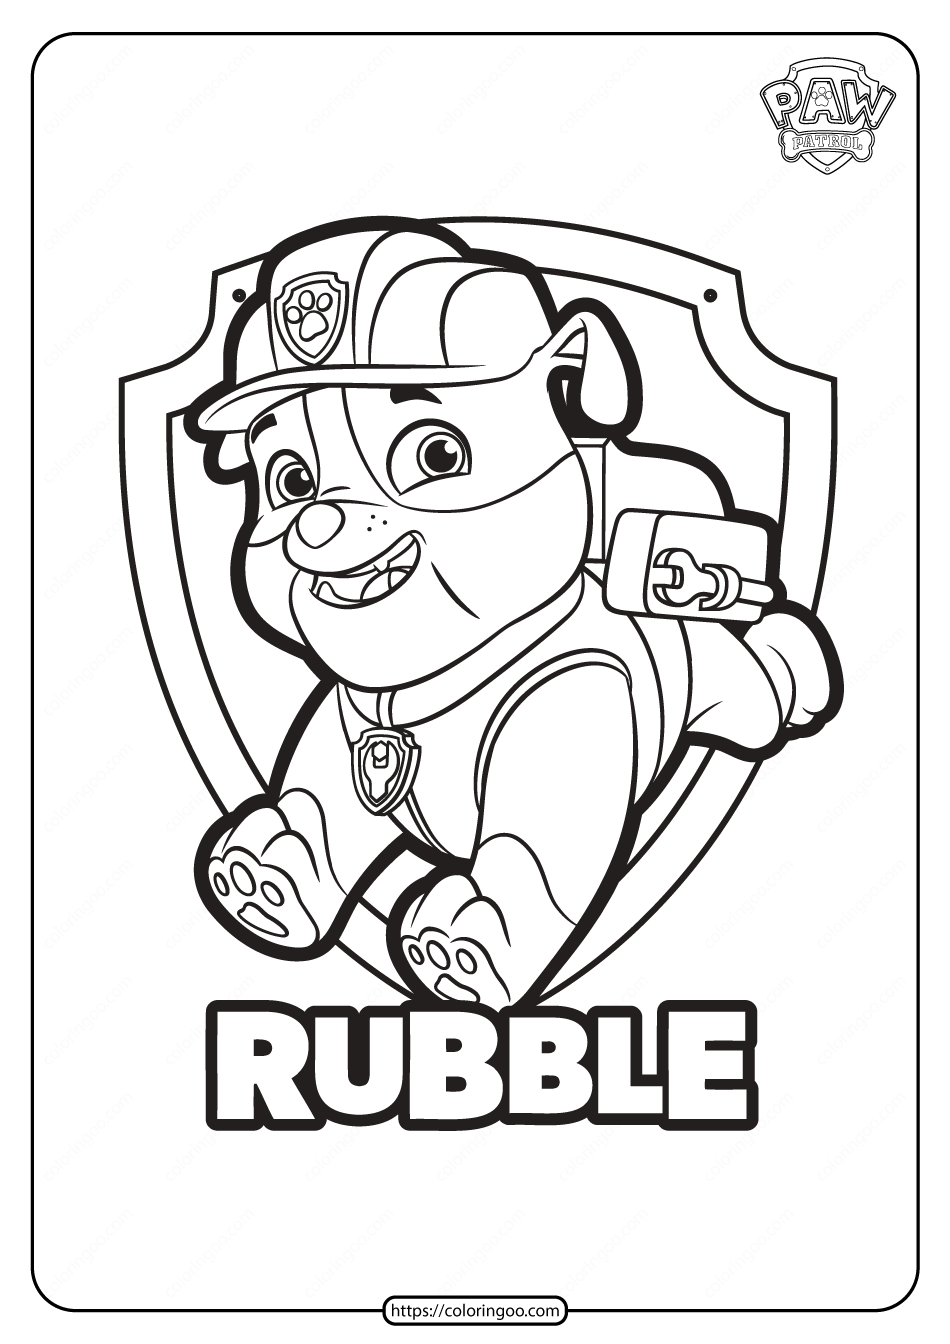 Free Printable Paw Patrol Rubble Coloring Pages